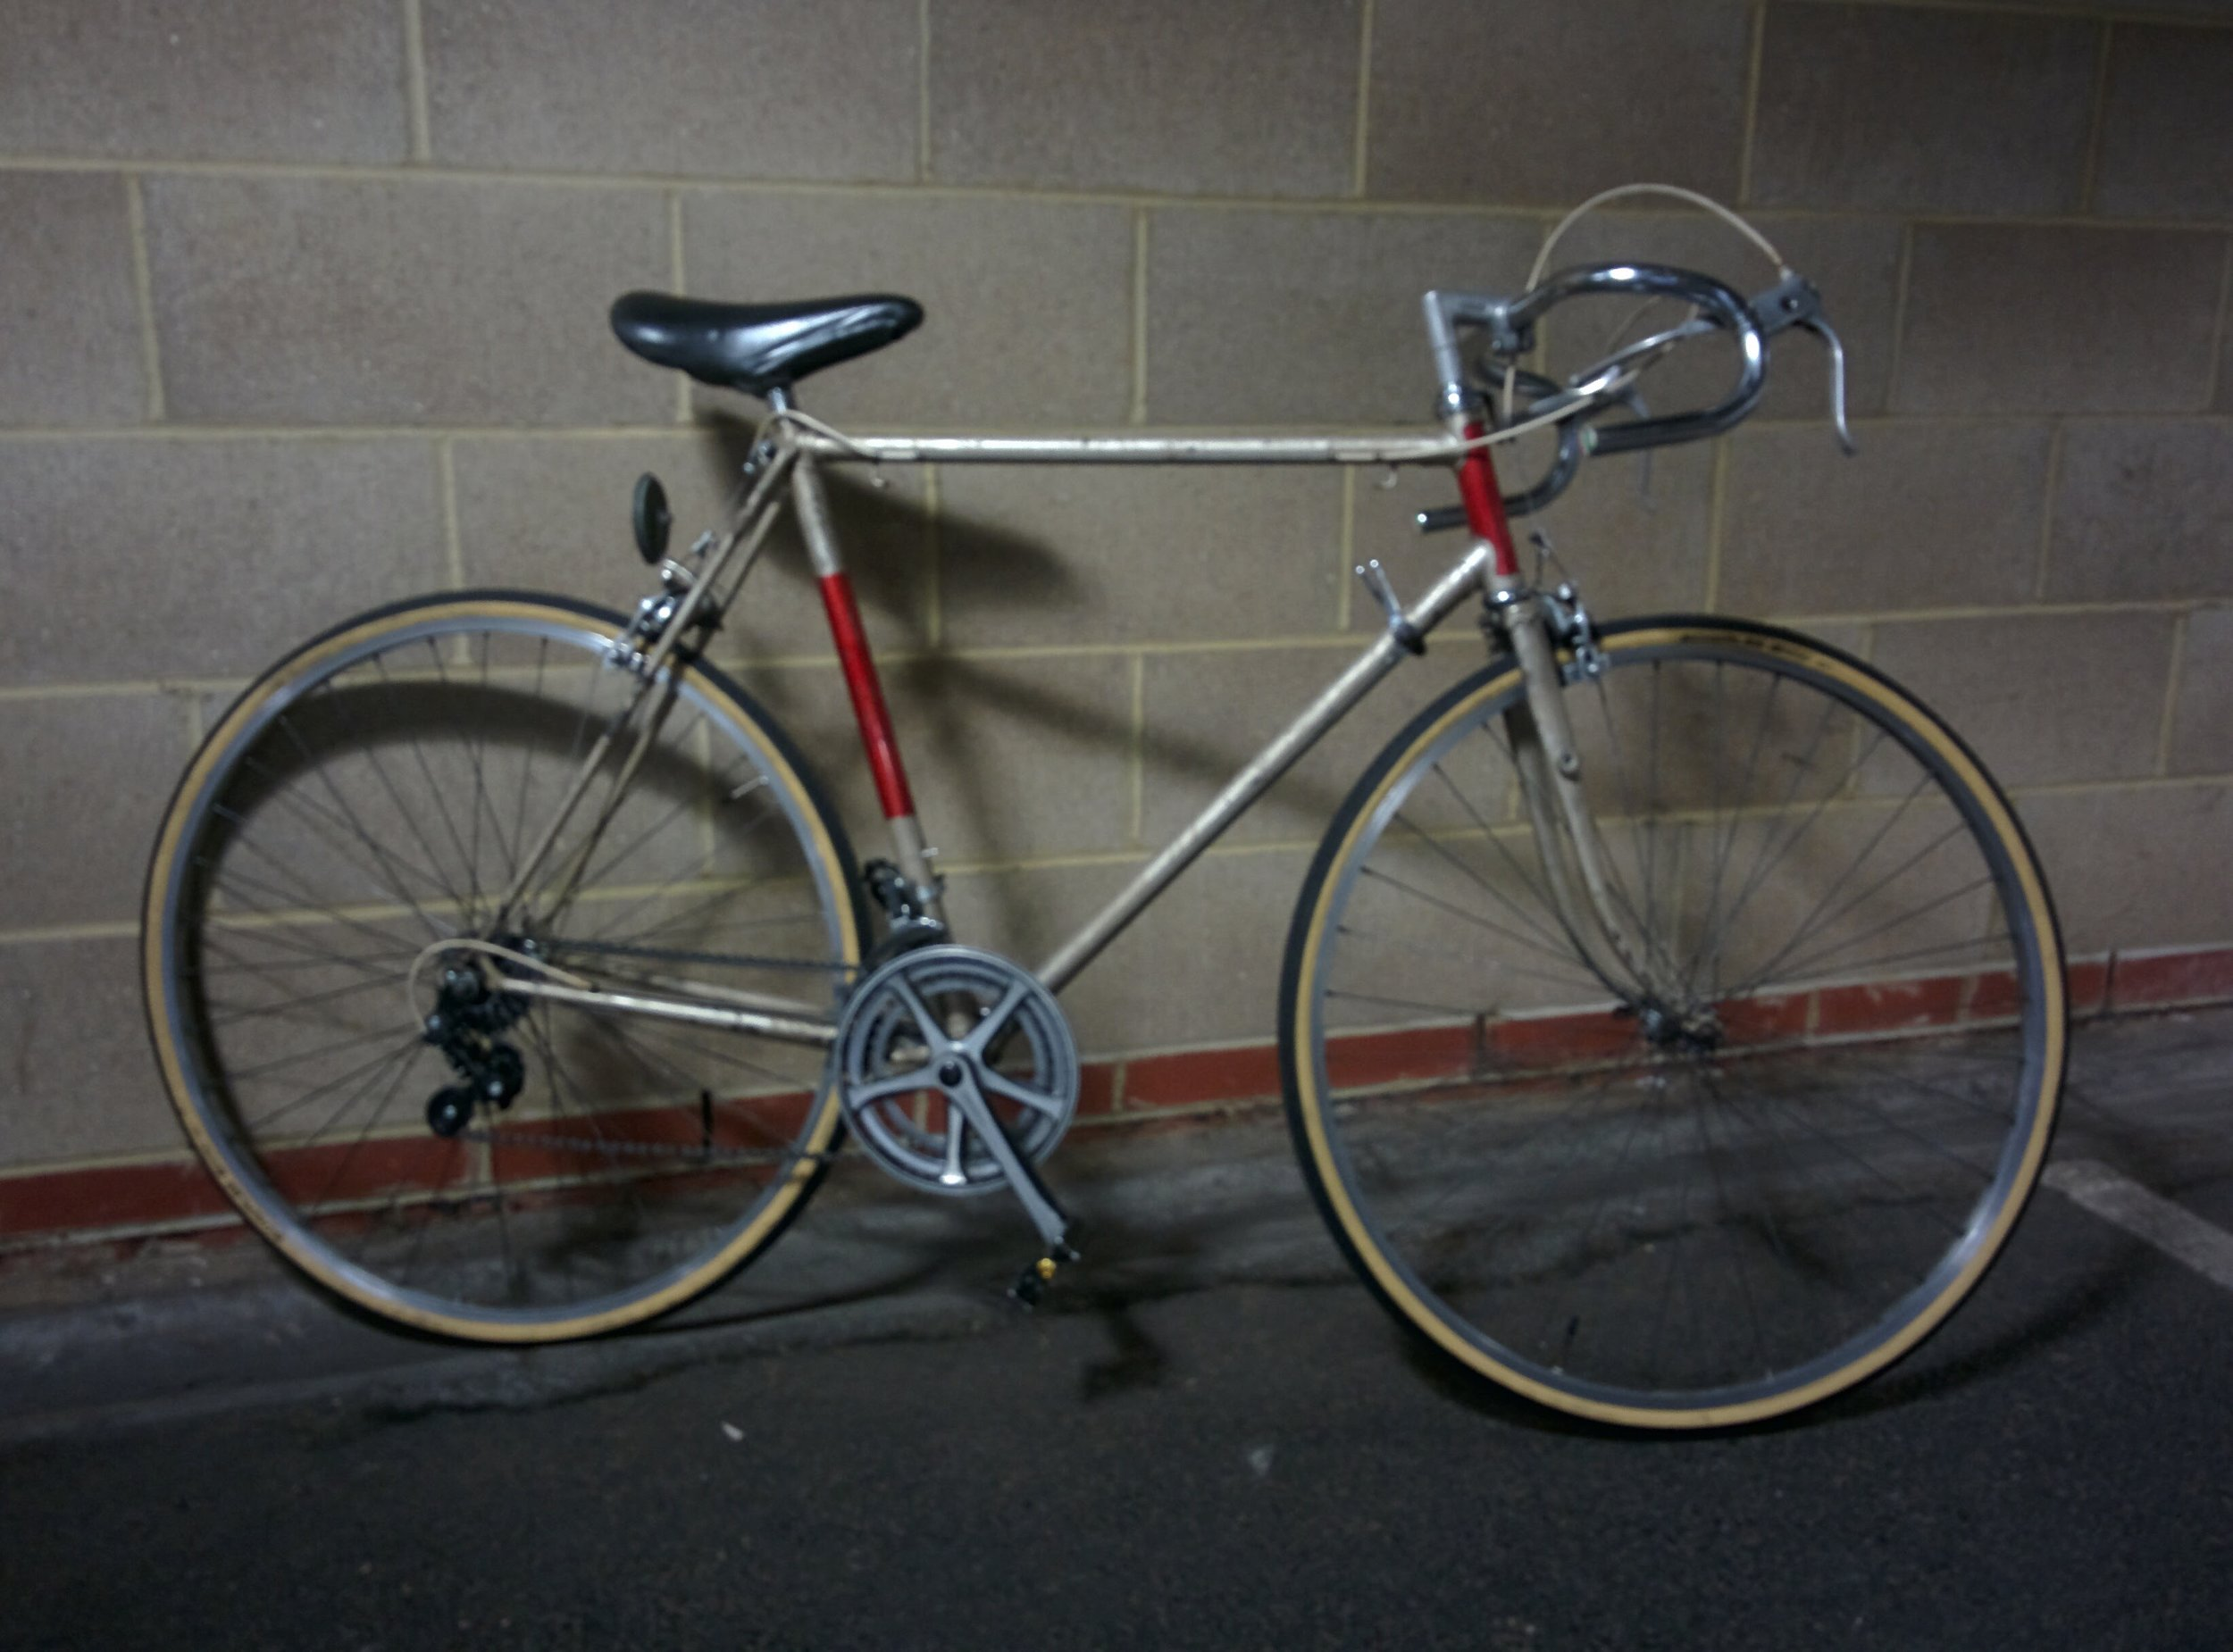 1980's 12 speed Raleigh Medale.  - Sold   Servicing  - Full service, including replaced broken spokes, new tyres,chainring, rear derailleur, polished bars   August / September 2016